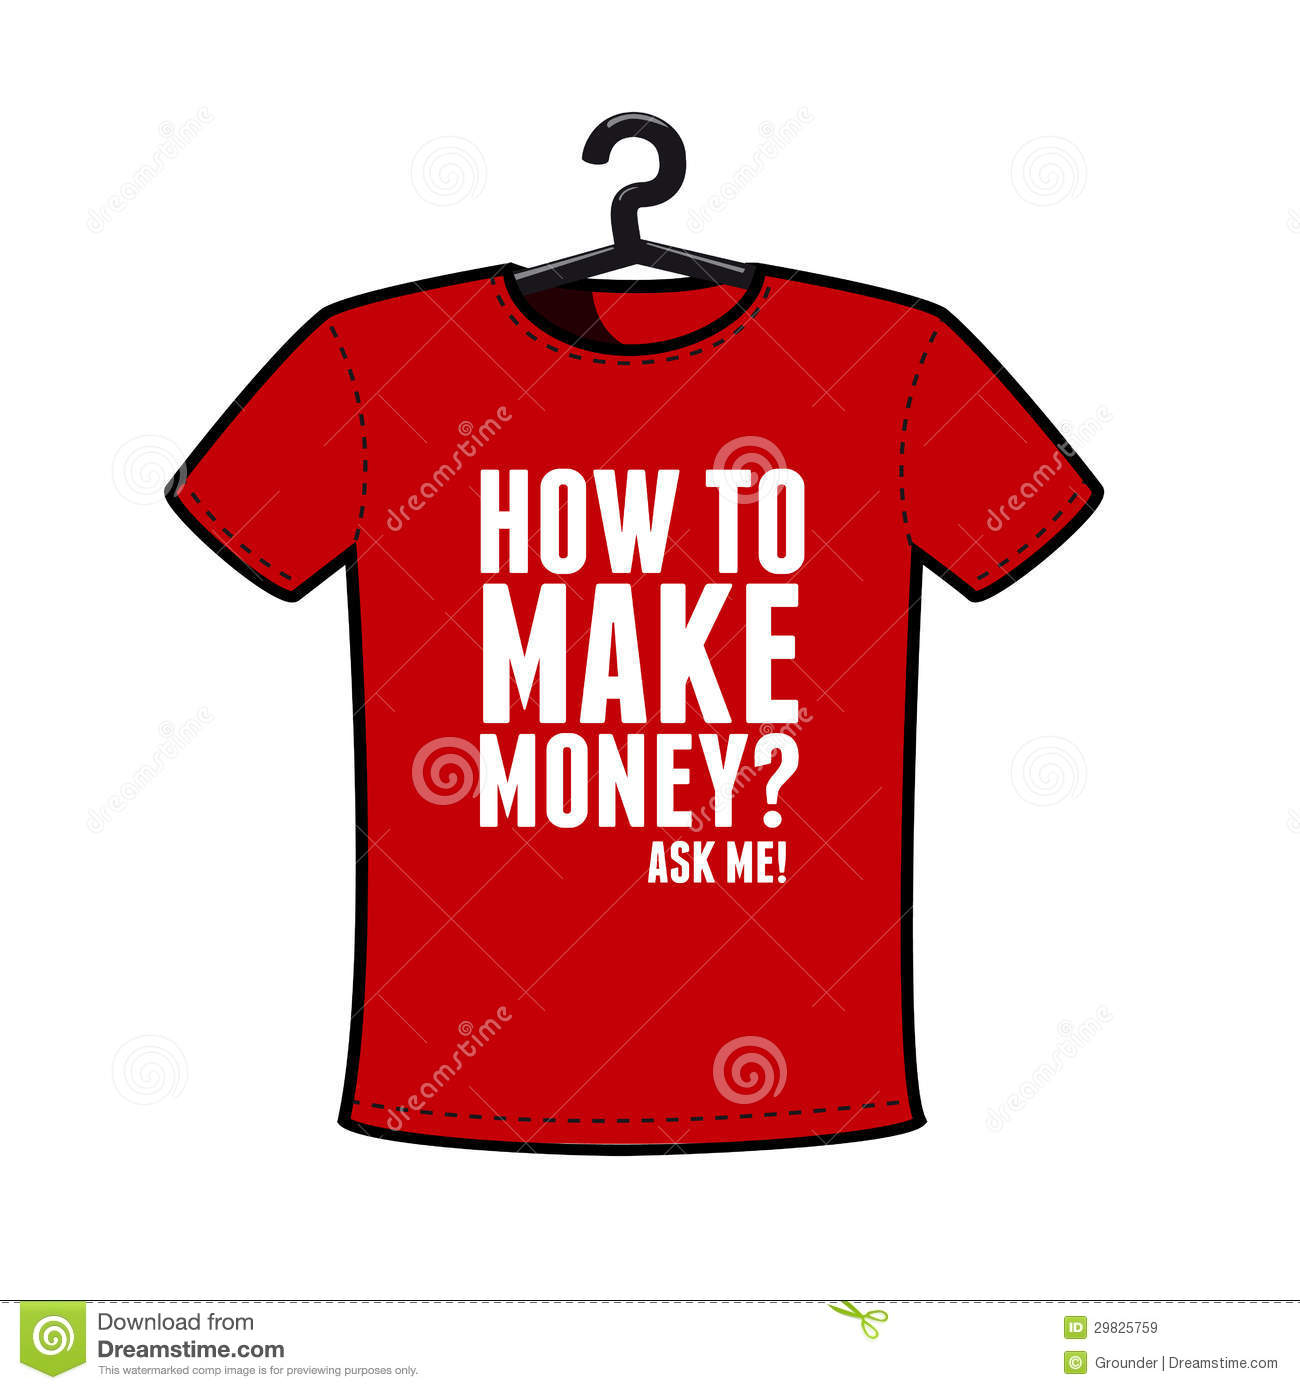 Make money t shirt royalty free stock images image 29825759 for How to make money selling custom t shirts